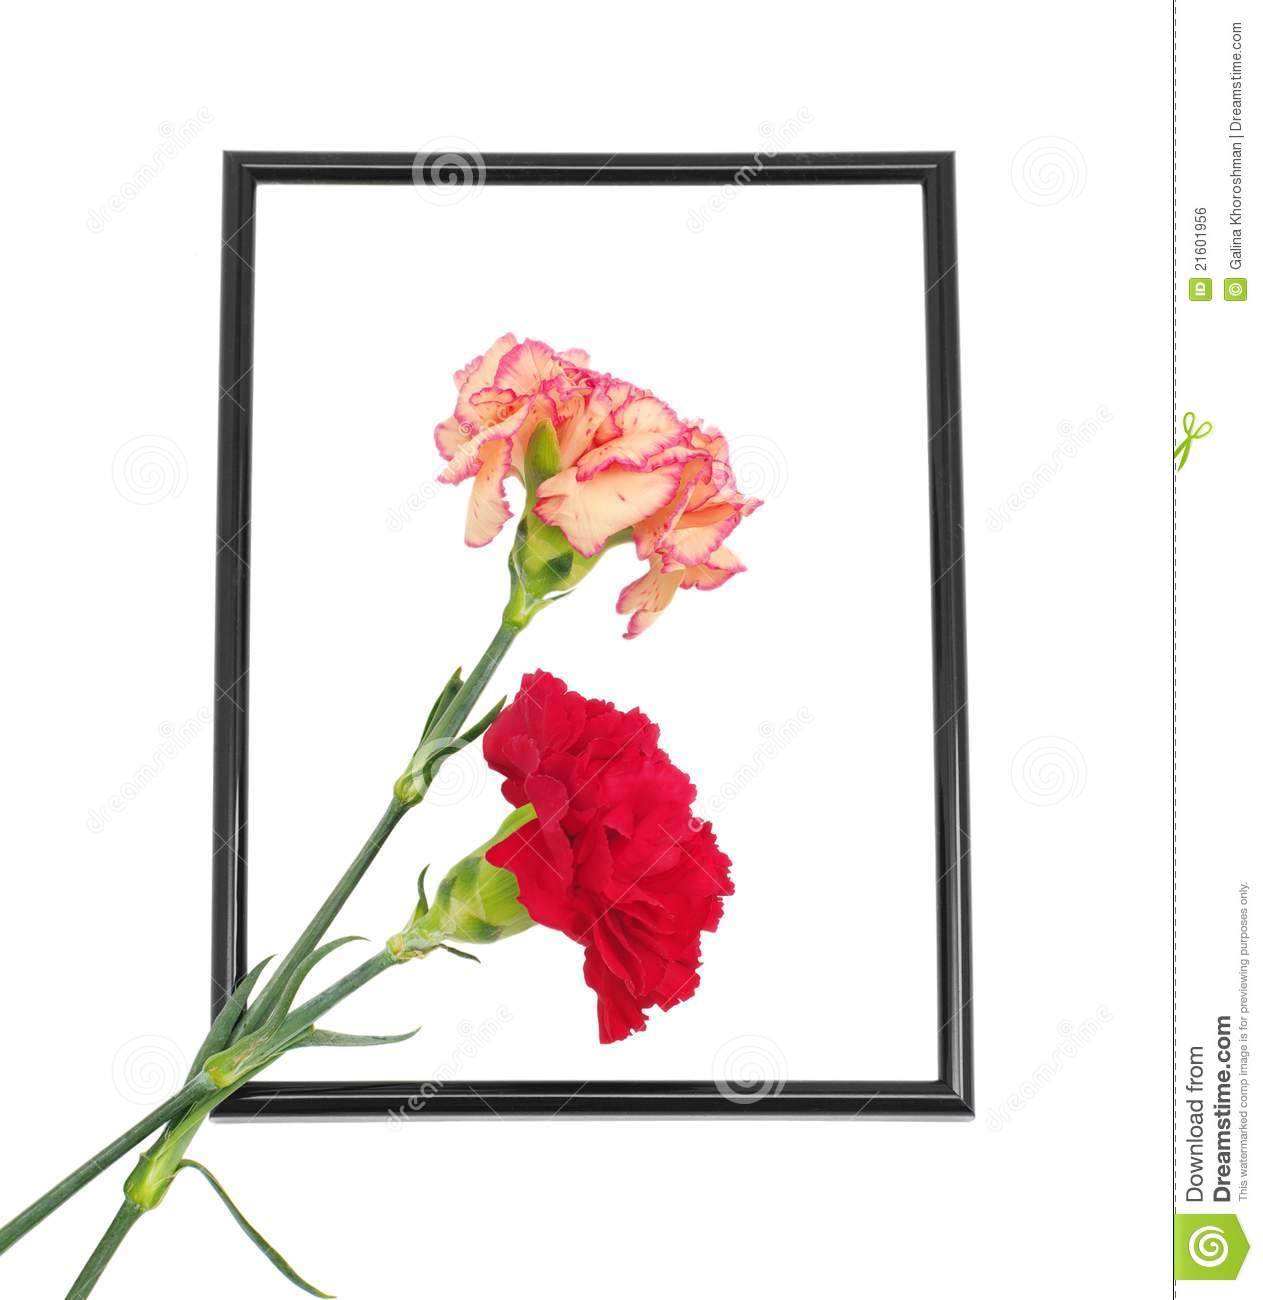 Two Carnations In Black Framing Royalty Free Stock Image   Image